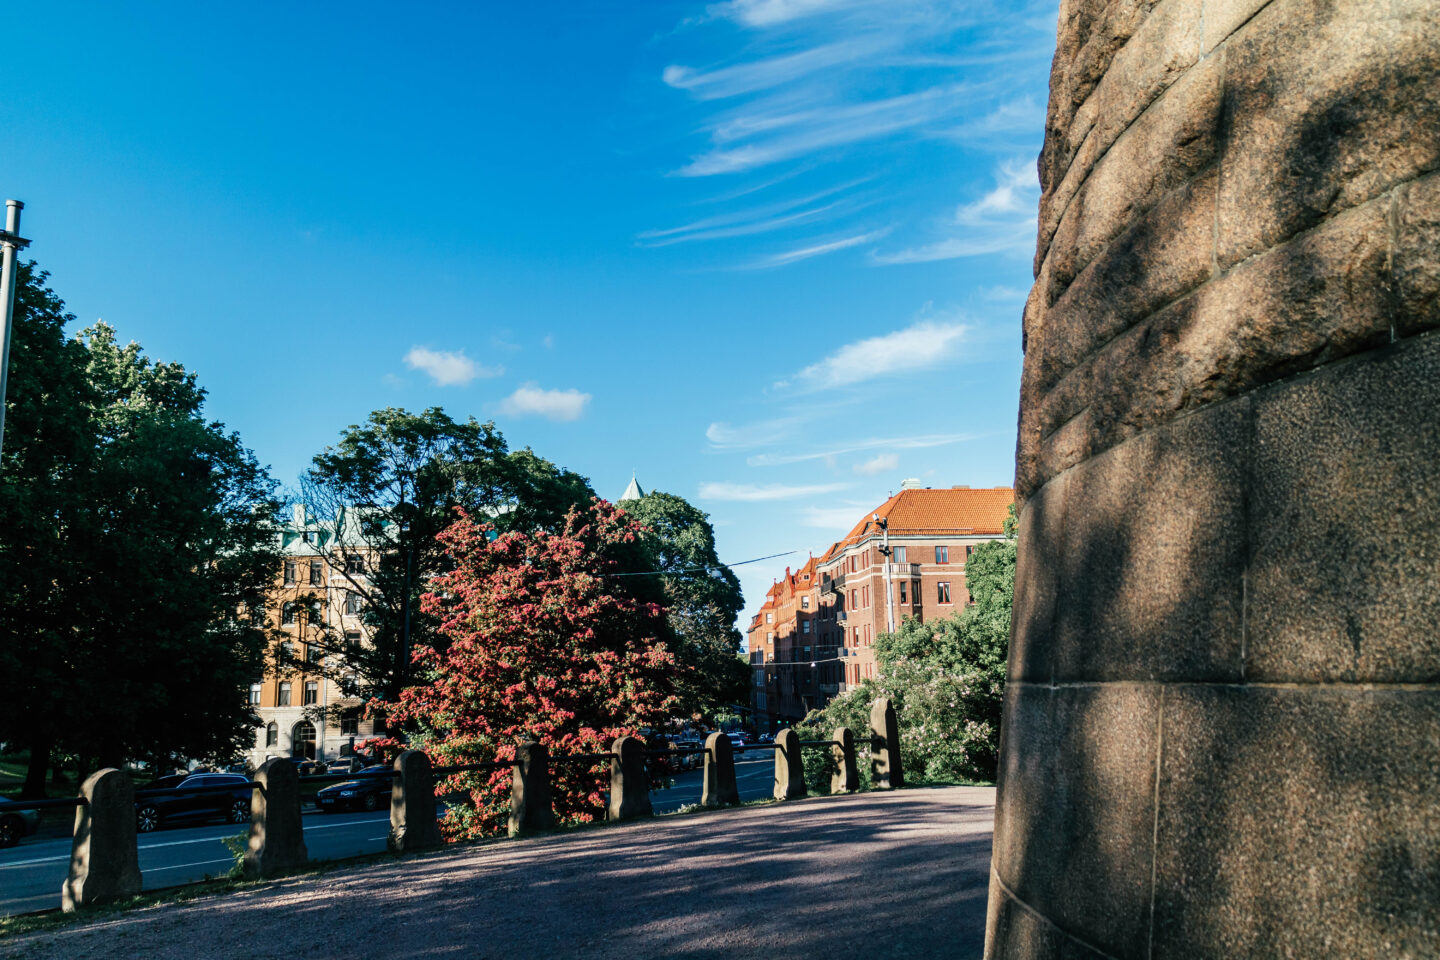 things to do in gothenburg city, sweden